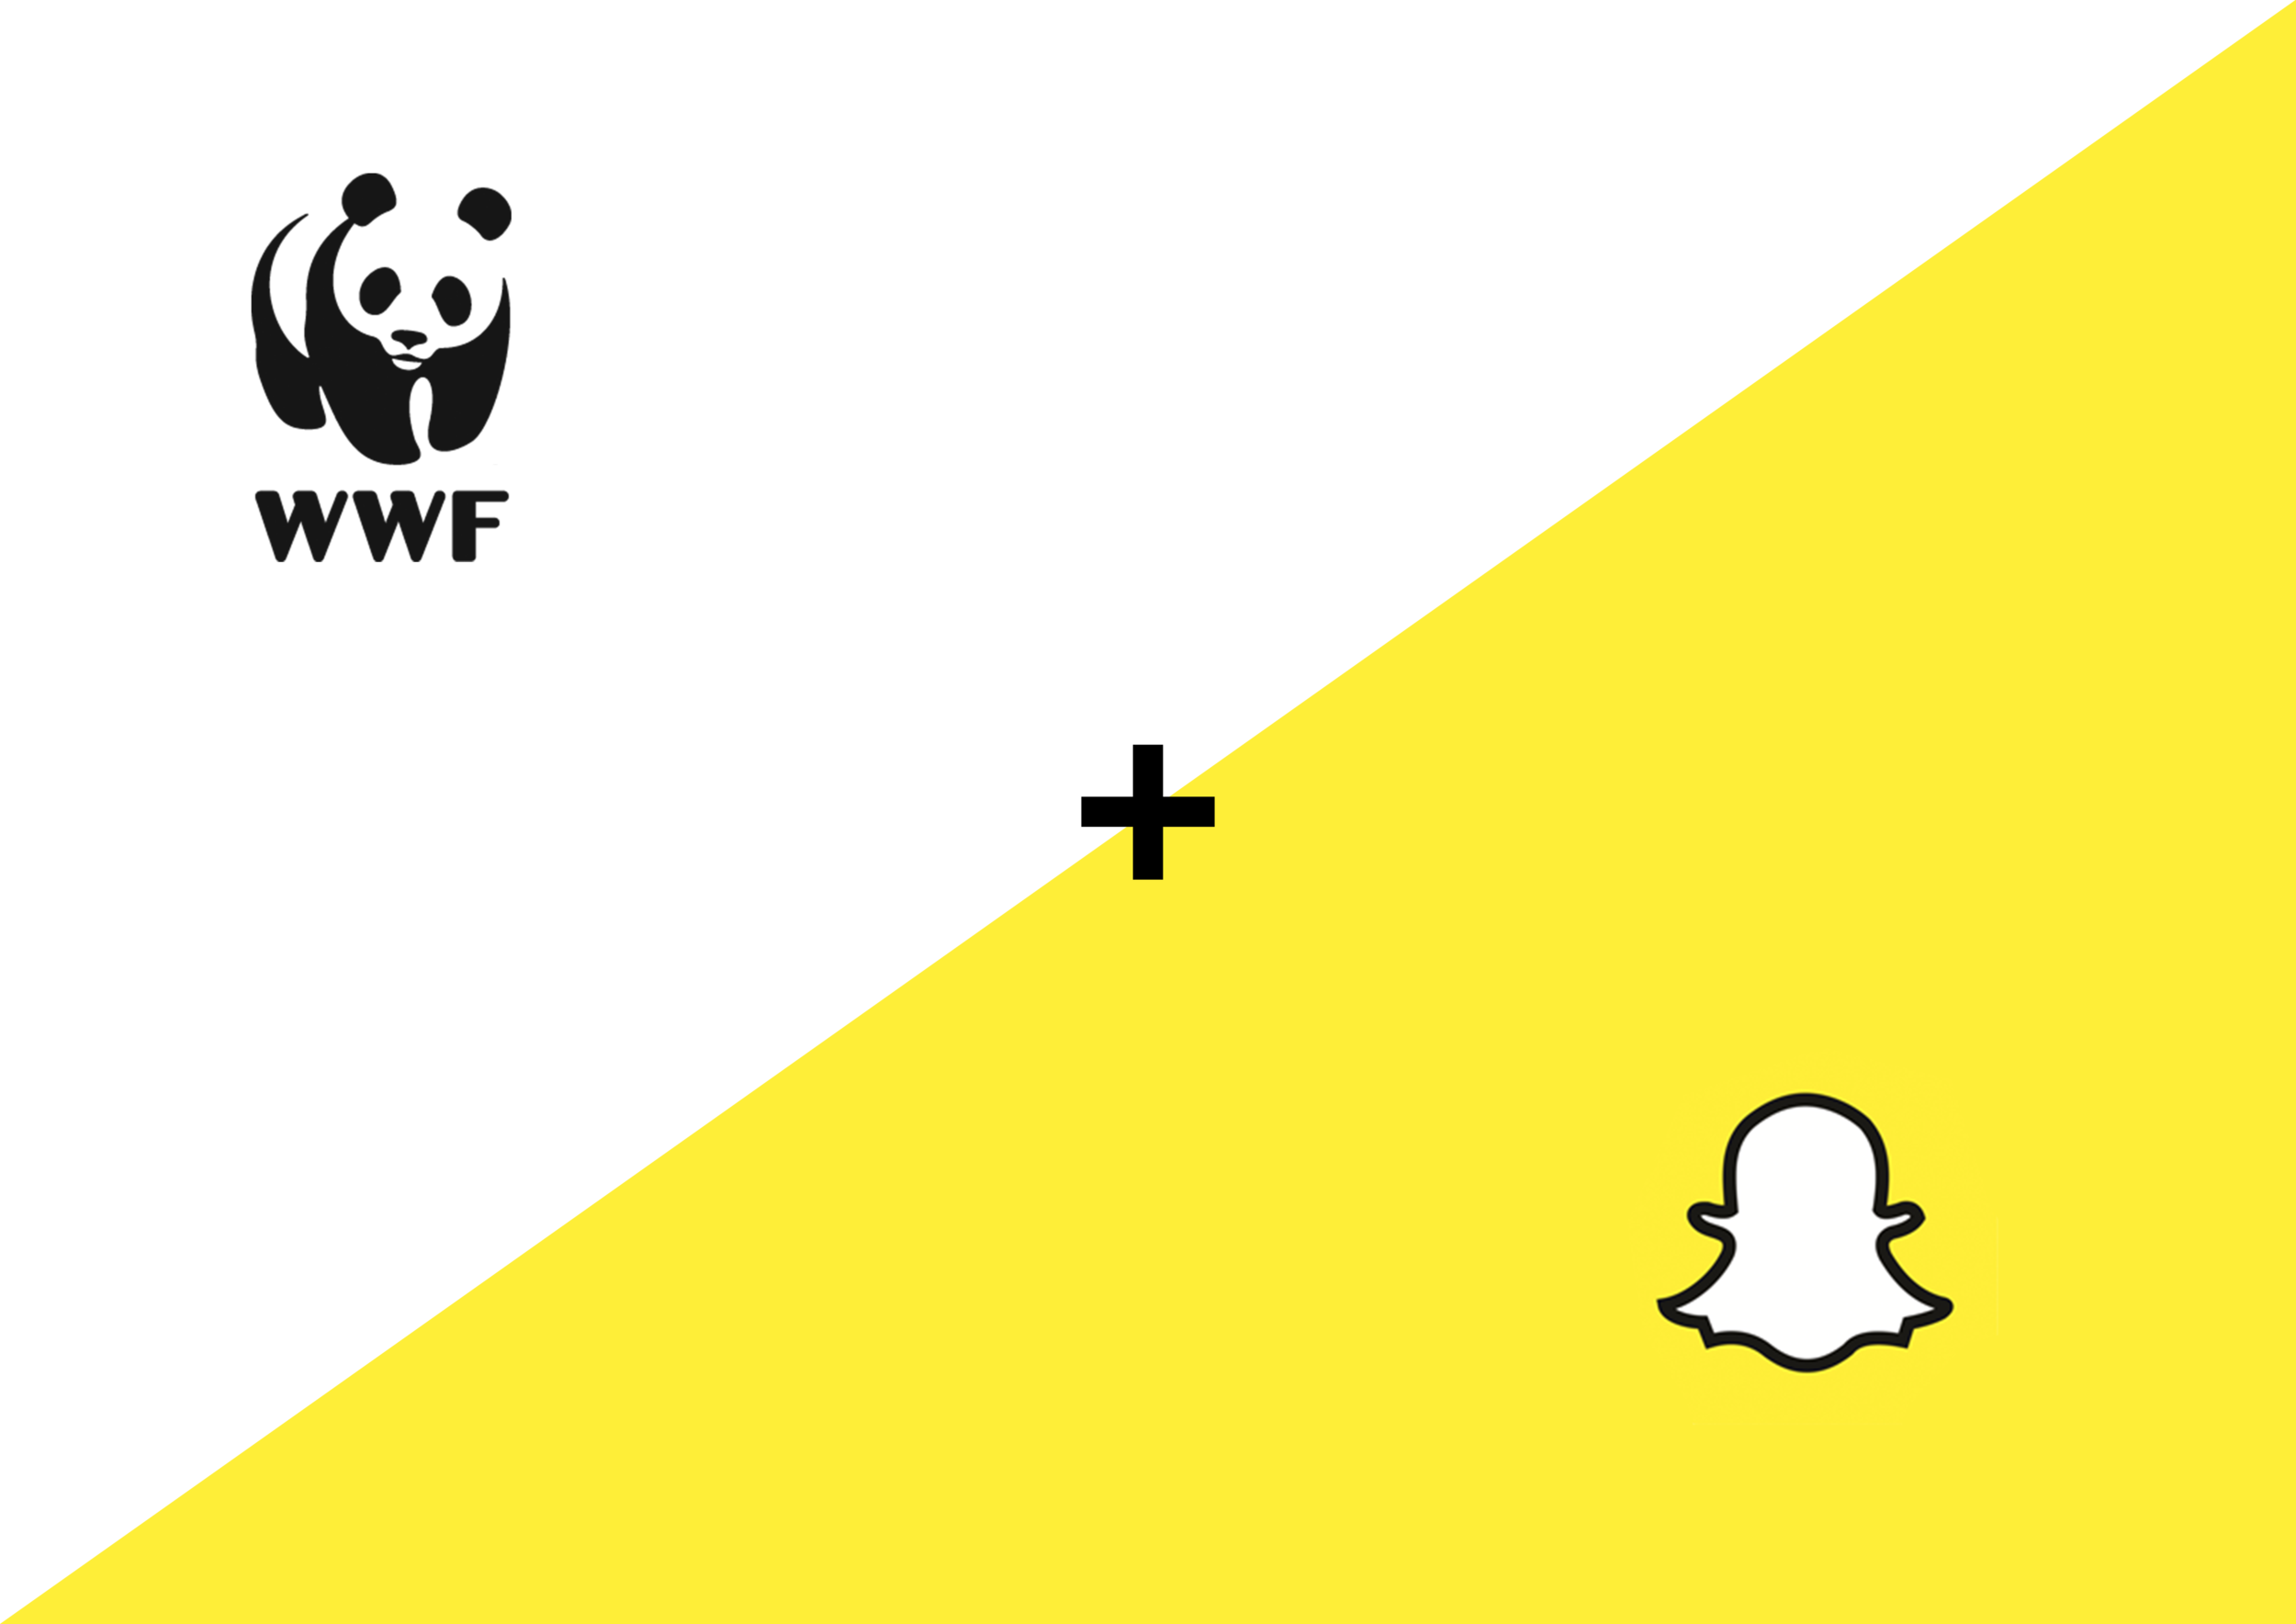 WWF x Snapchat - Partnership Marketing